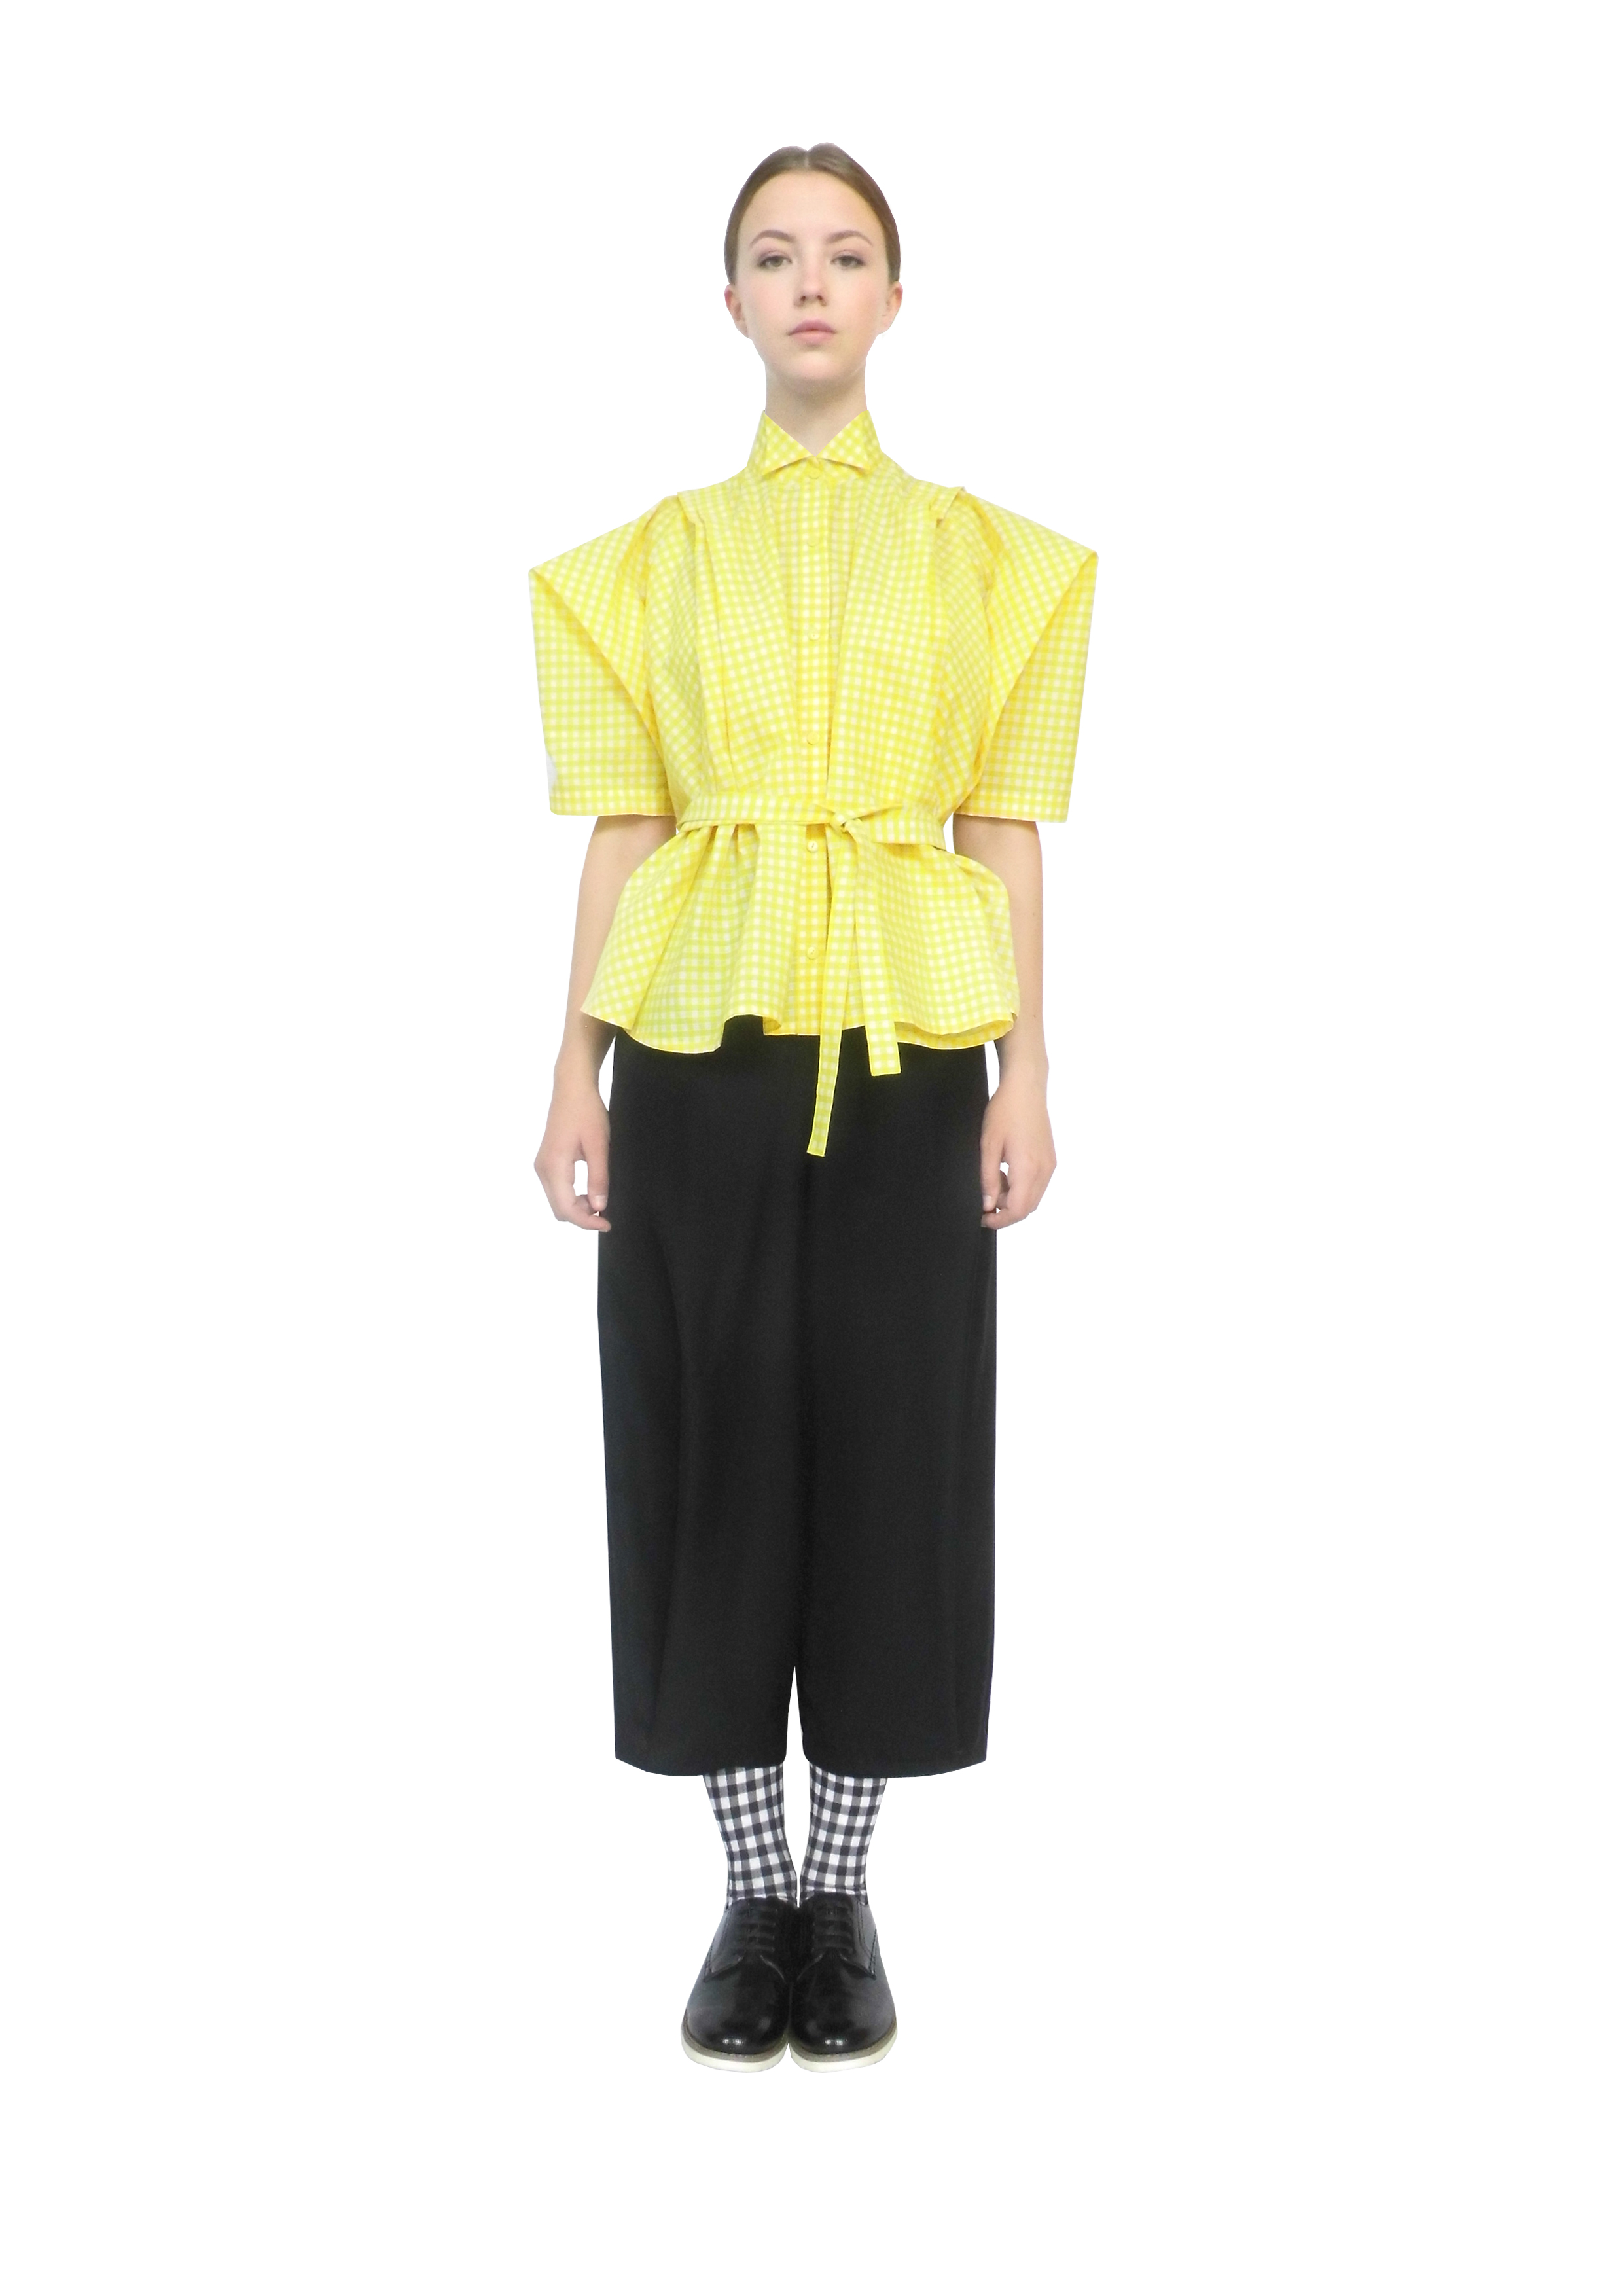 The farmers shirt & pleated trousers